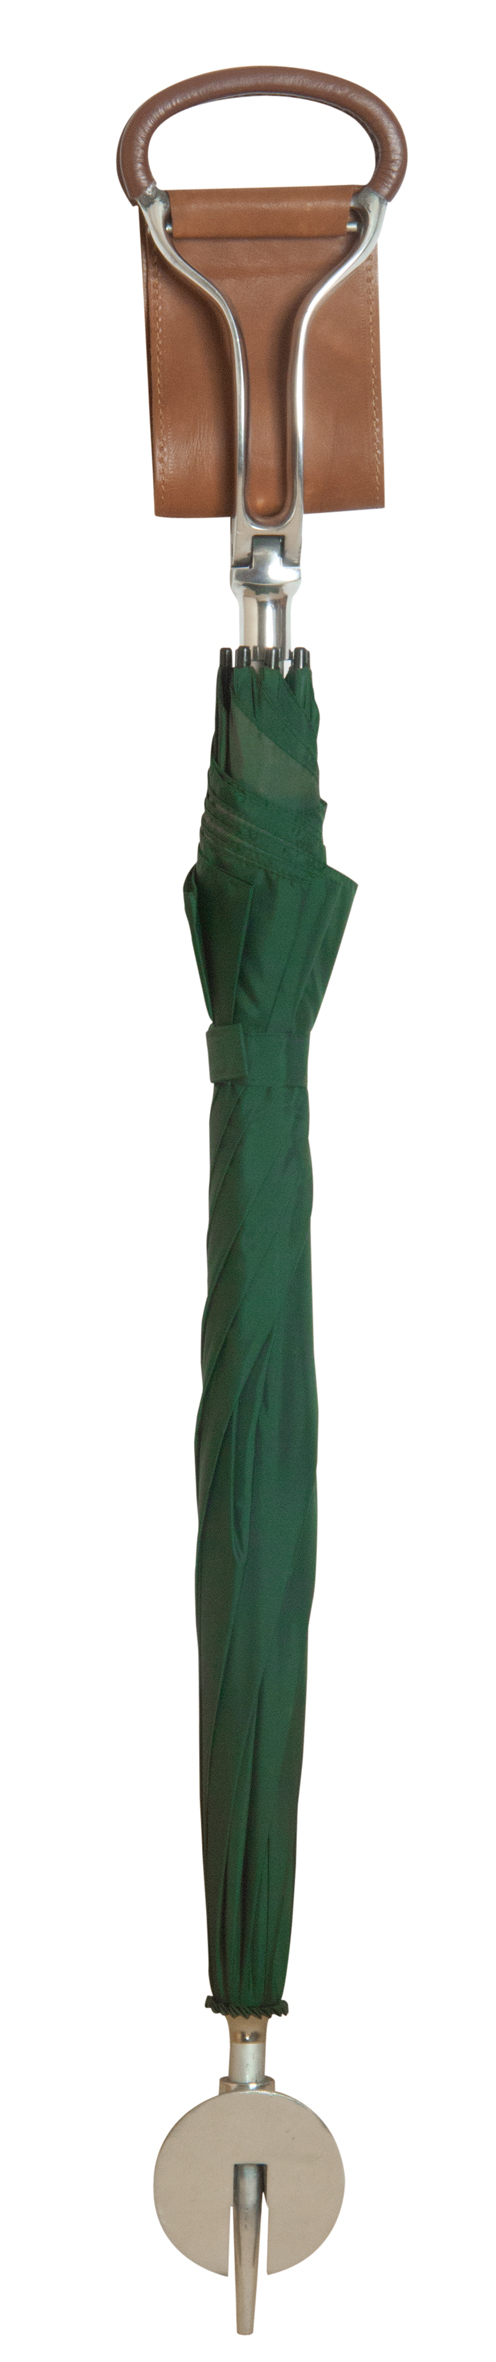 Classic Canes Umbrella Seat Stick With A Green Canopy